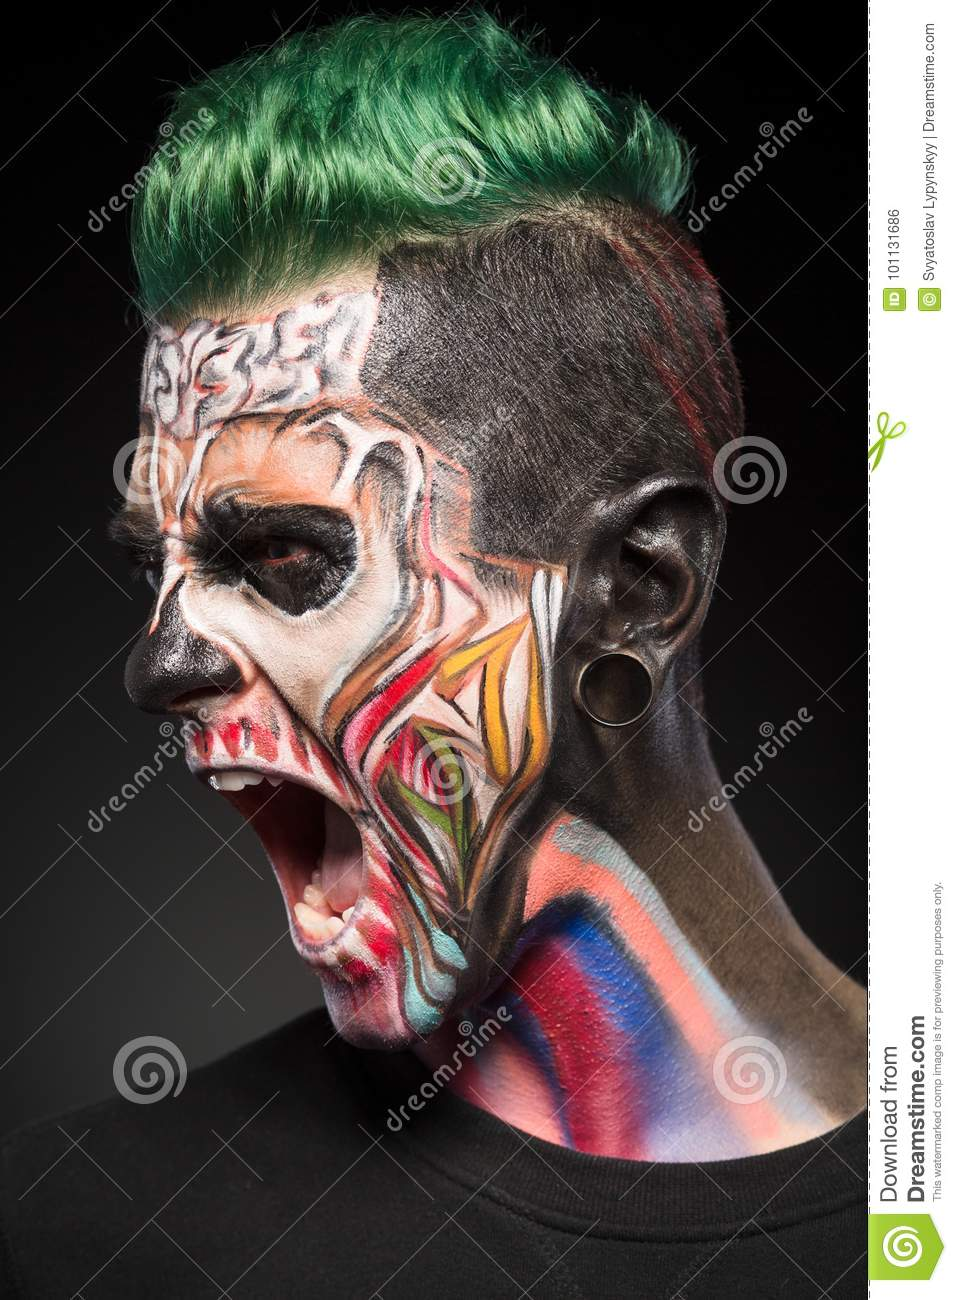 Mystical face art, scary skeleton man with open mouth showing teeth.